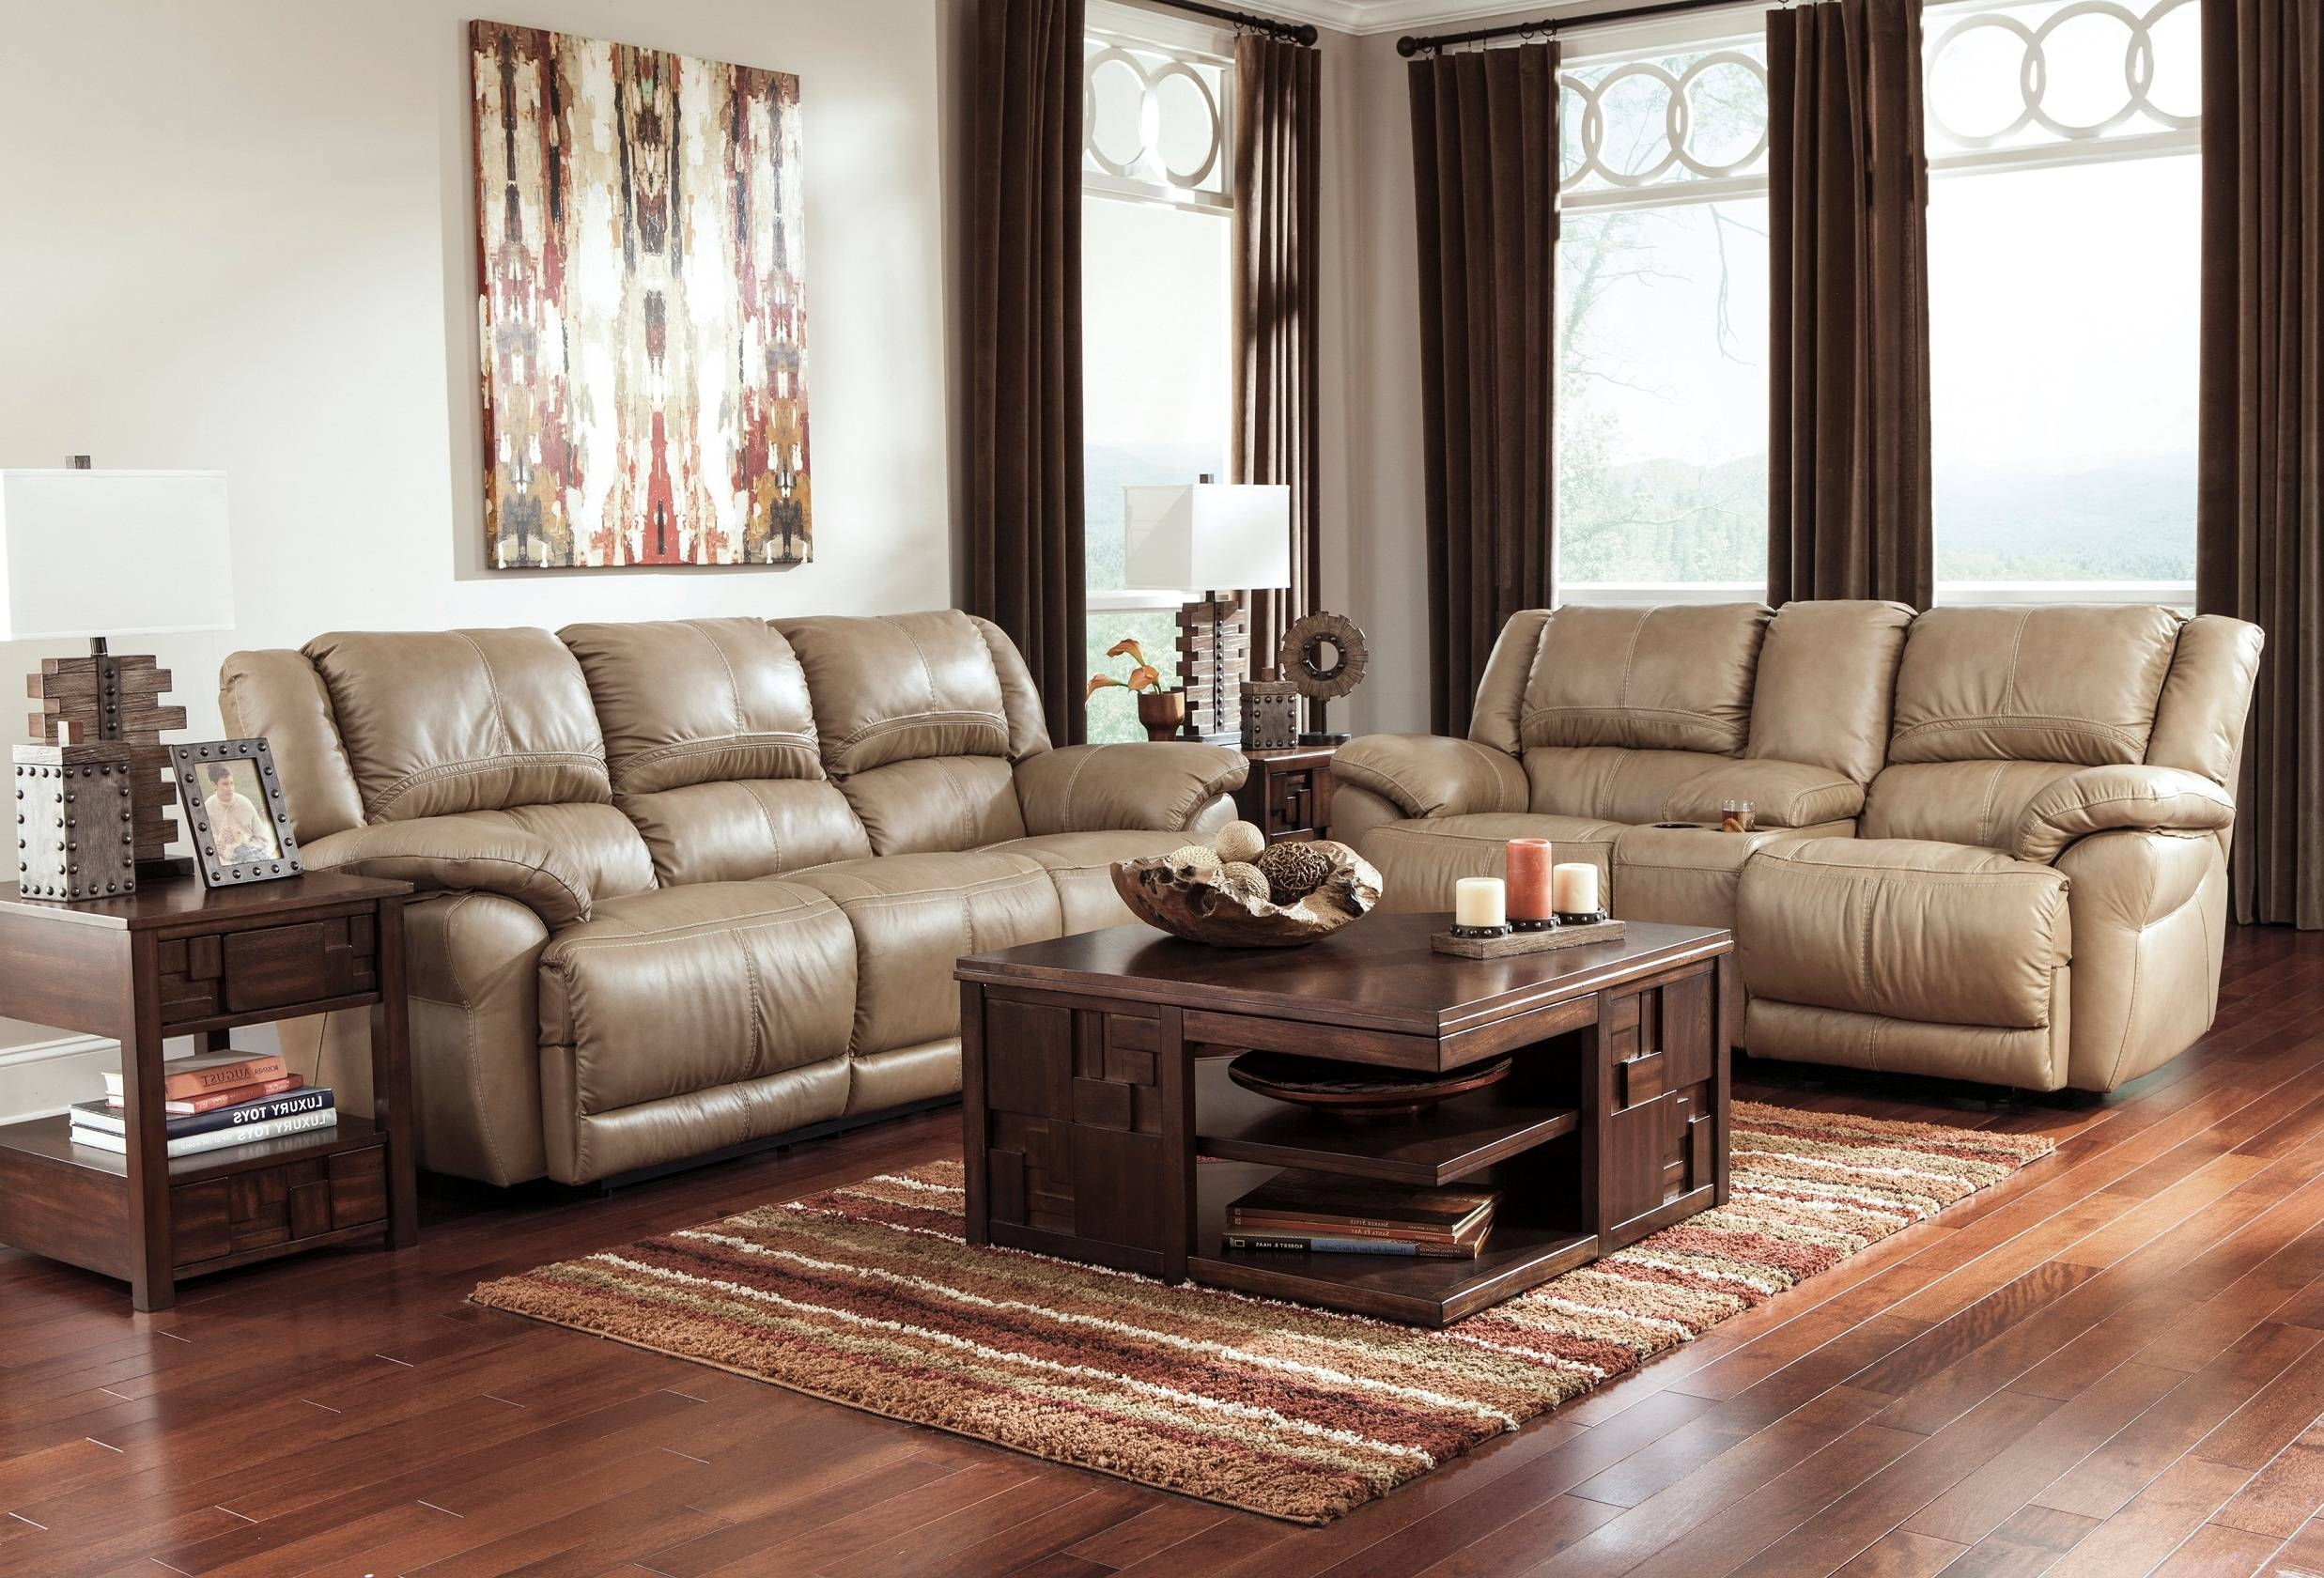 Furniture: Full Grain Leather Sectional | Costco Leather Sofa for Carmel Leather Sofas (Image 6 of 15)